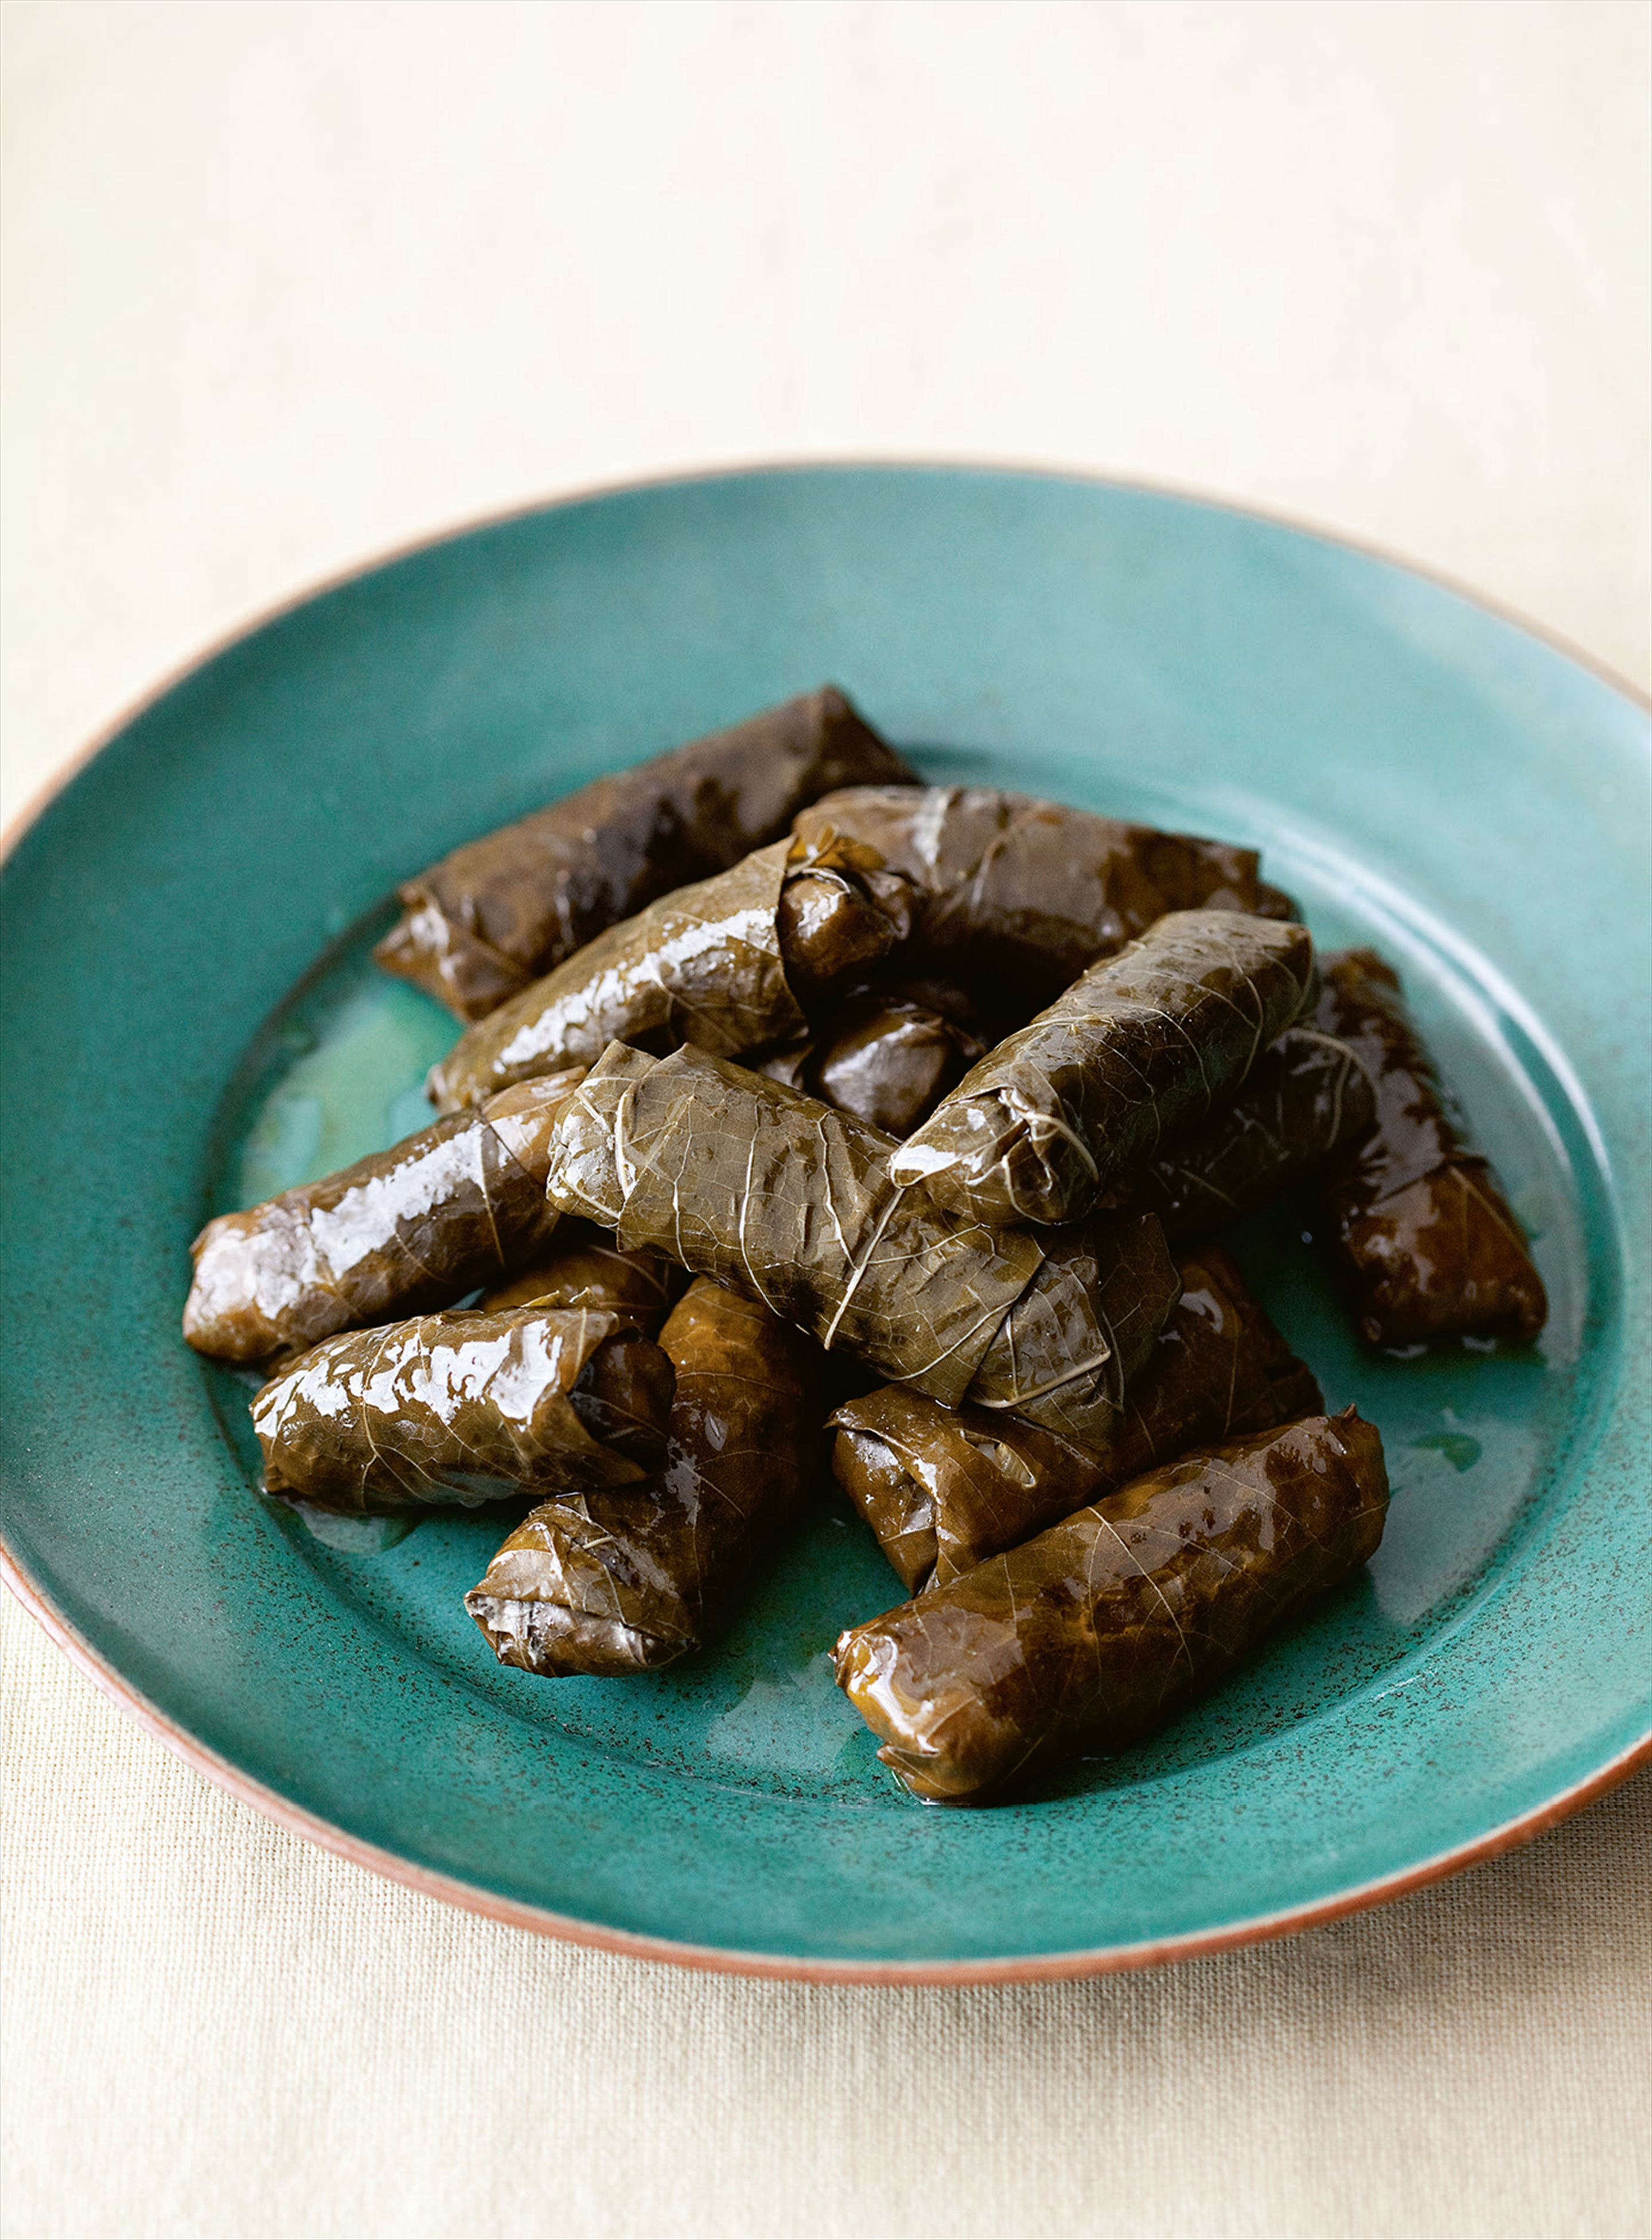 Vine leaves stuffed with pork